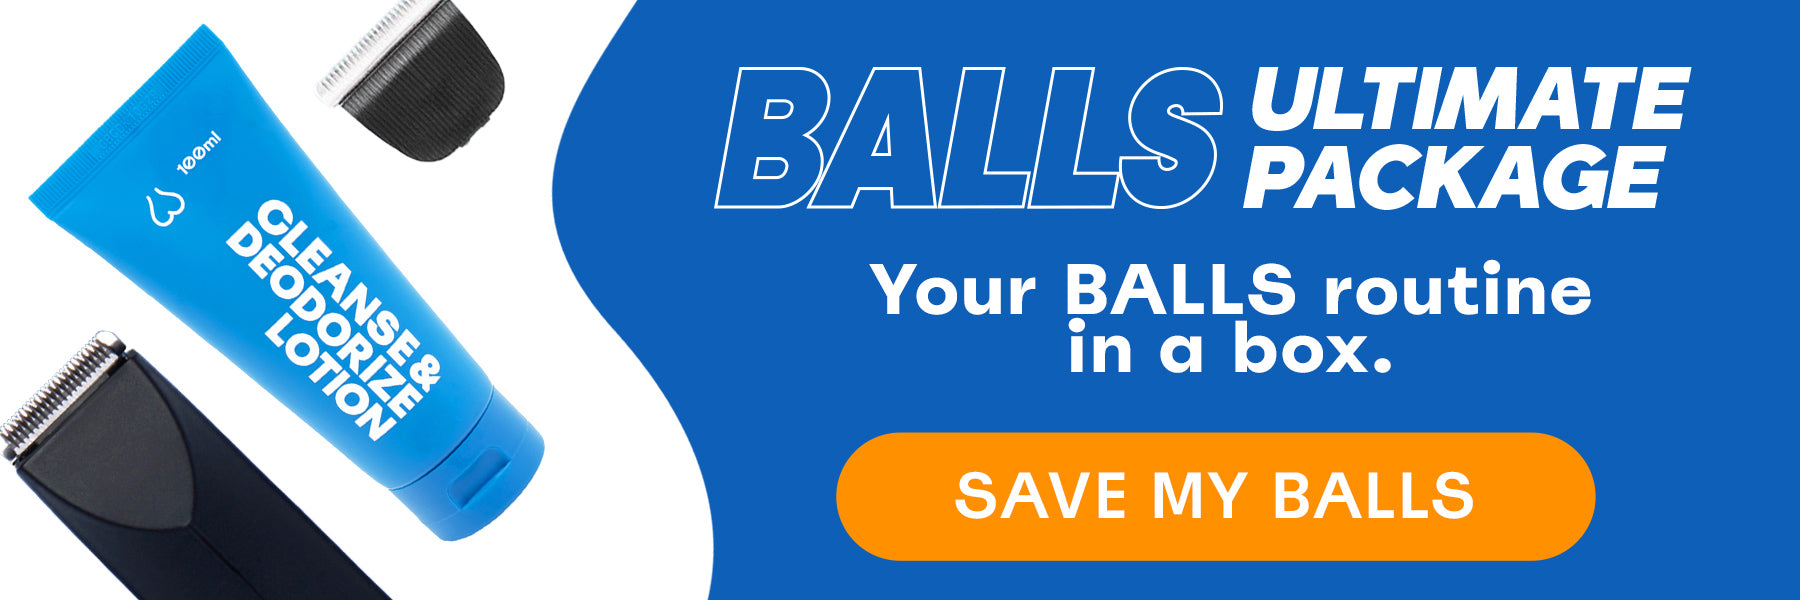 BALLS Ultimate package - Your BALLS Routine in a box